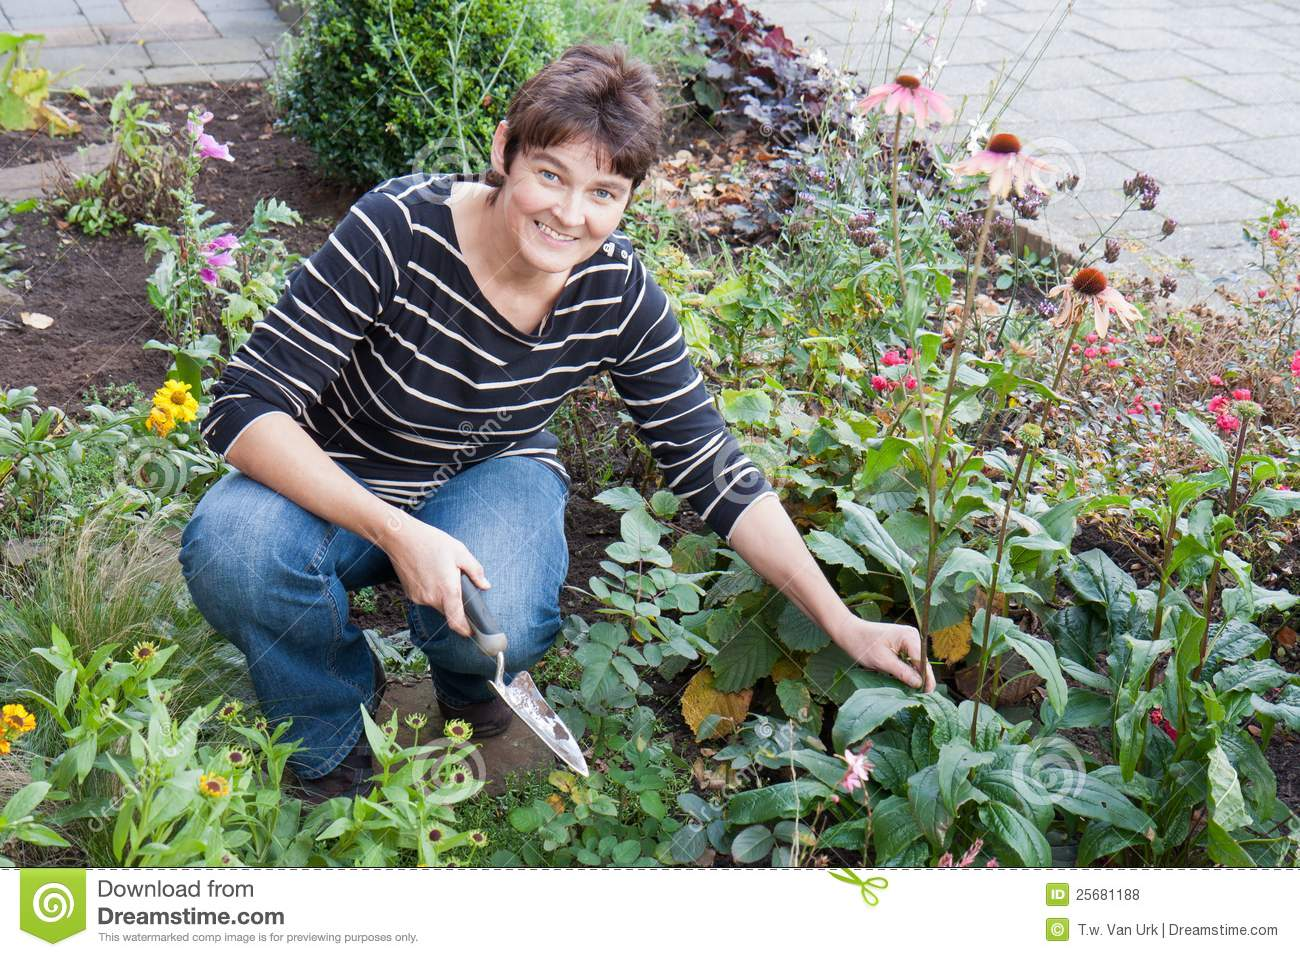 A woman gardening in the garden of her house